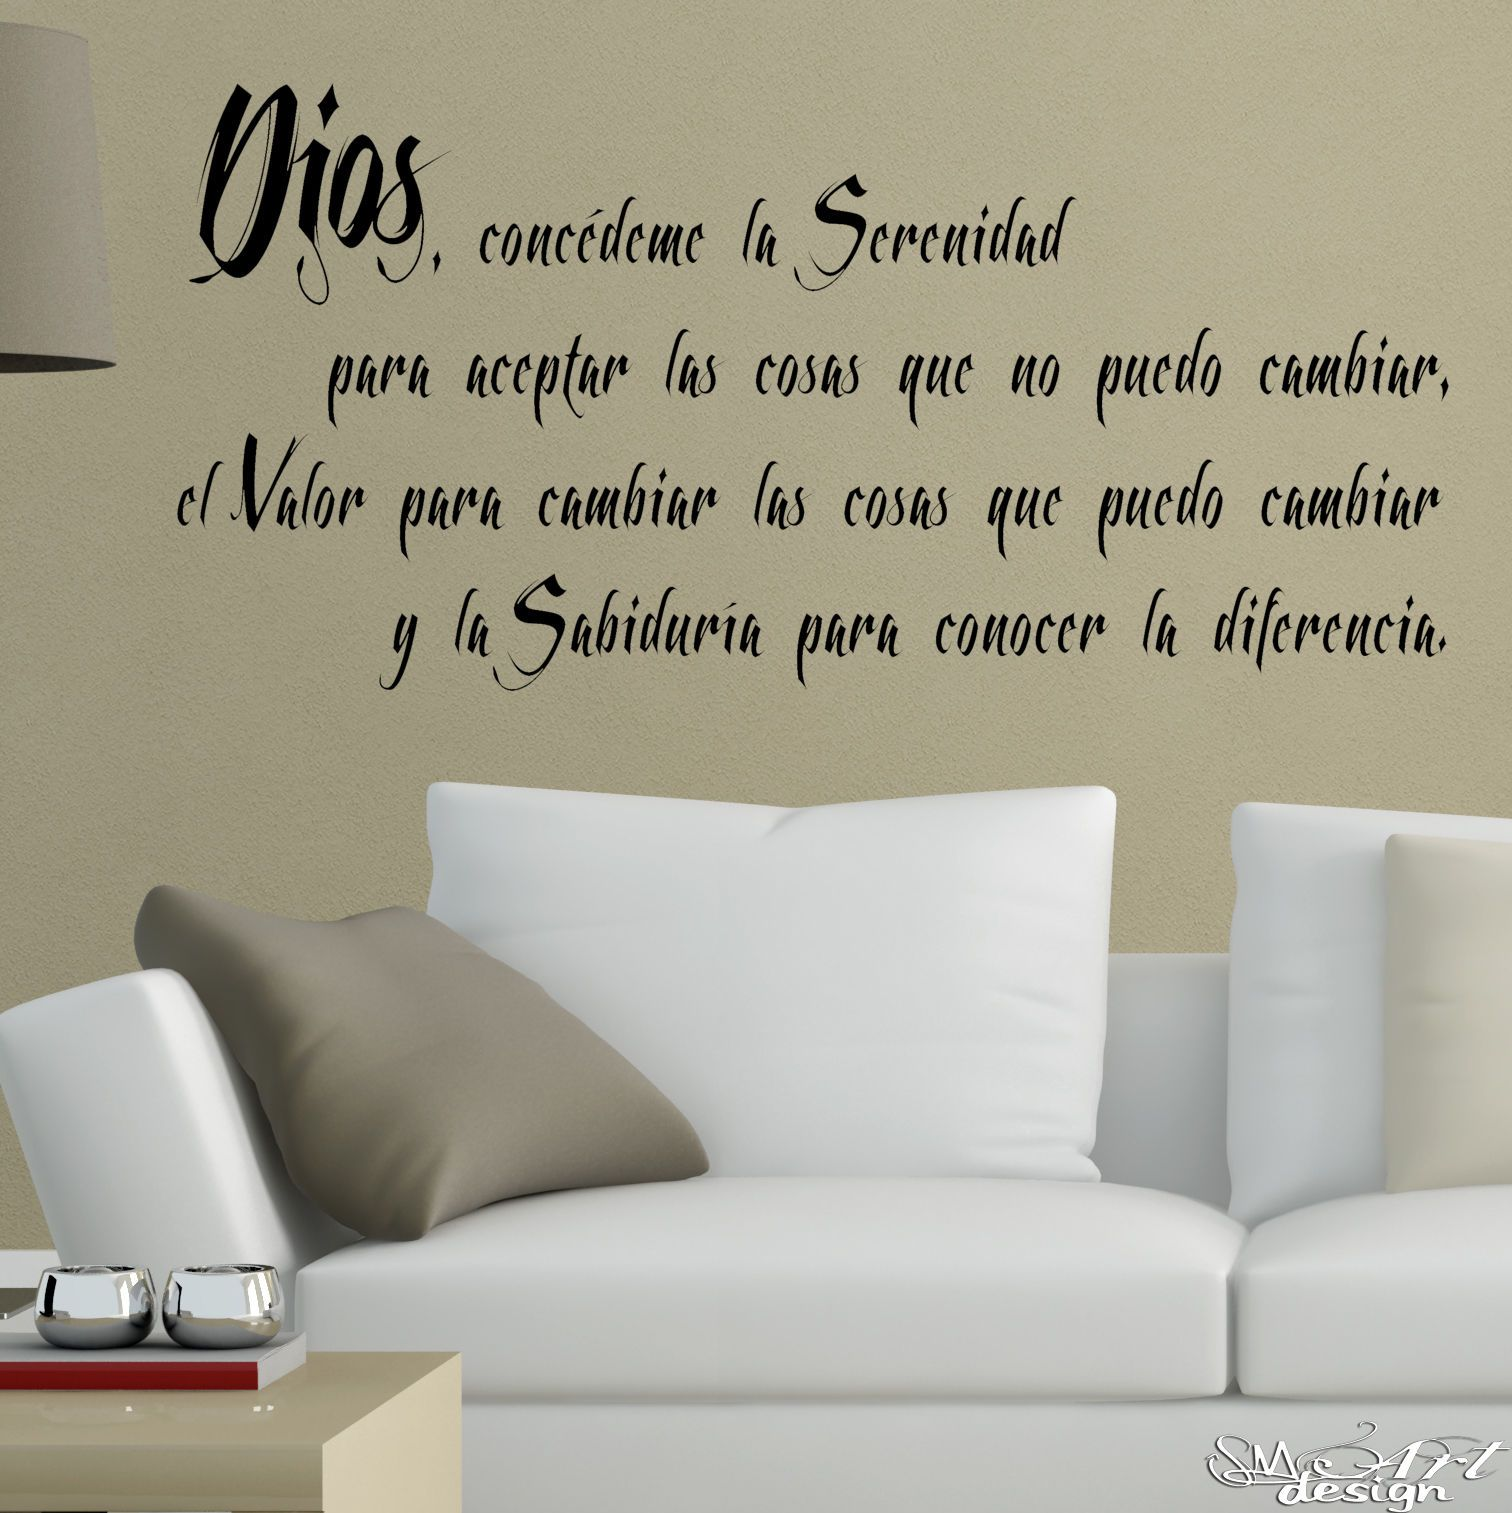 Serenity Prayer Wall Decal Spanish Oracion De La Serenidad Decor Vinyl Sticker